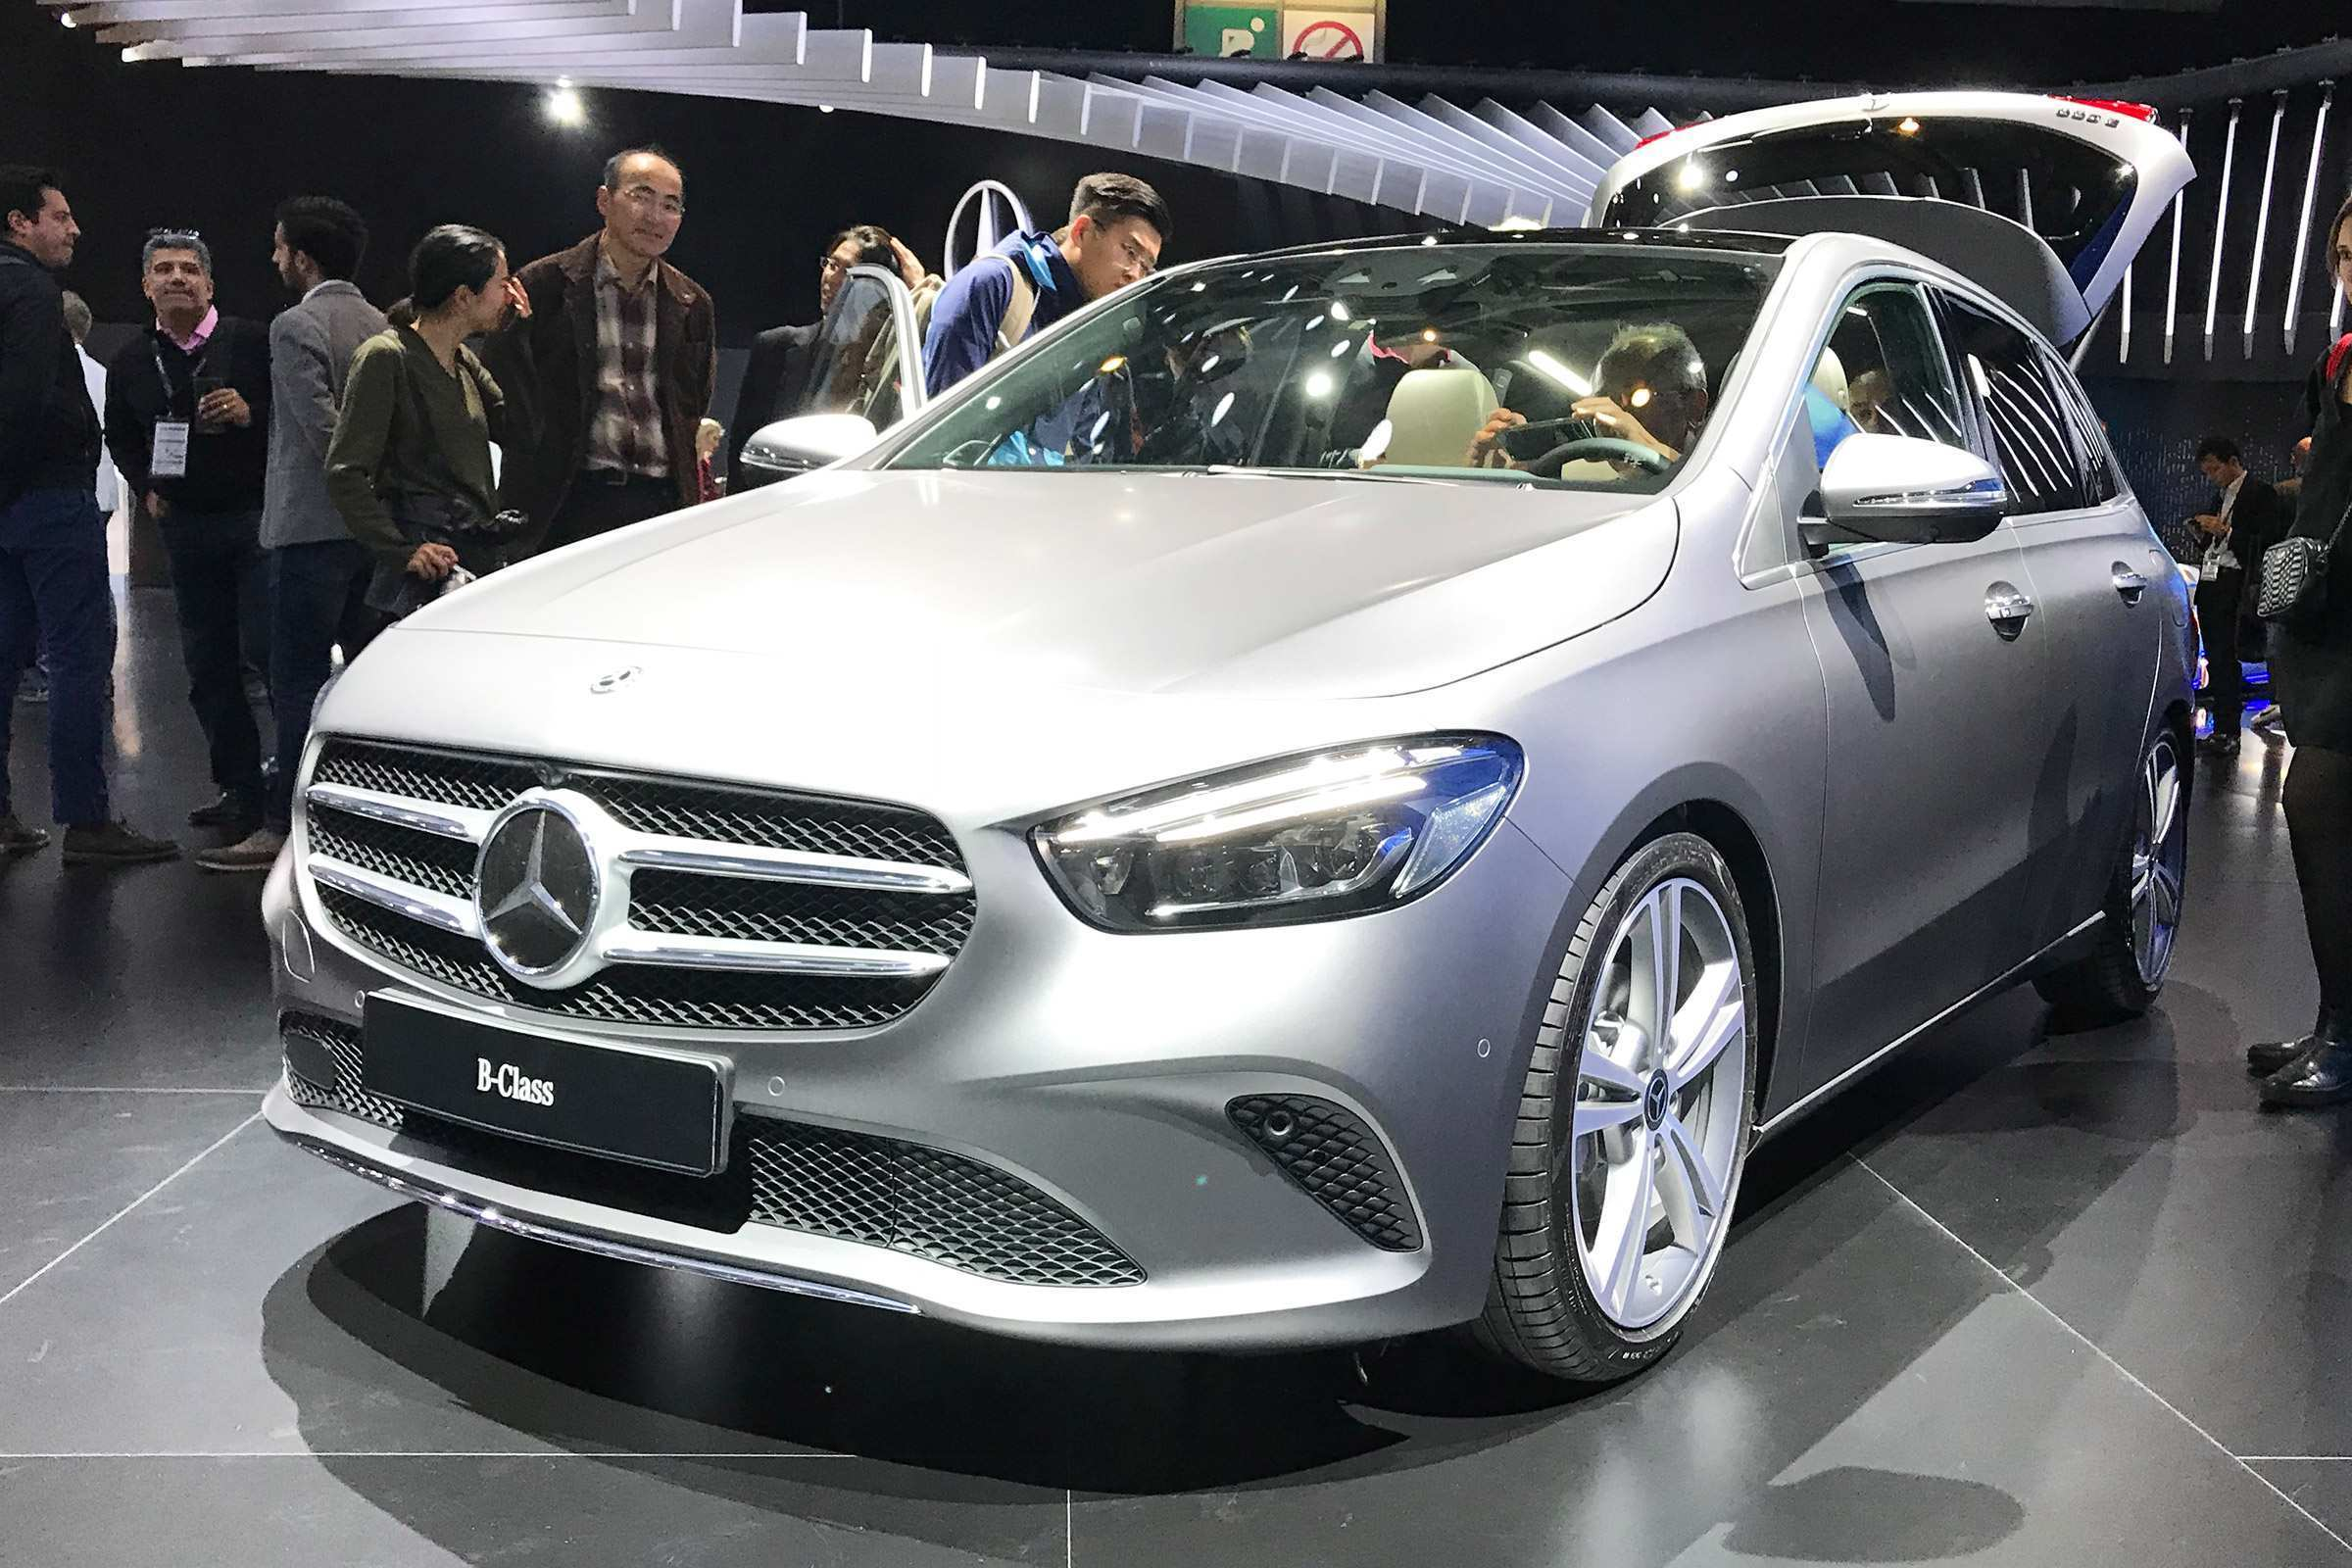 62 Best Review Best Mercedes 2019 B Class Price And Release Date Redesign and Concept with Best Mercedes 2019 B Class Price And Release Date